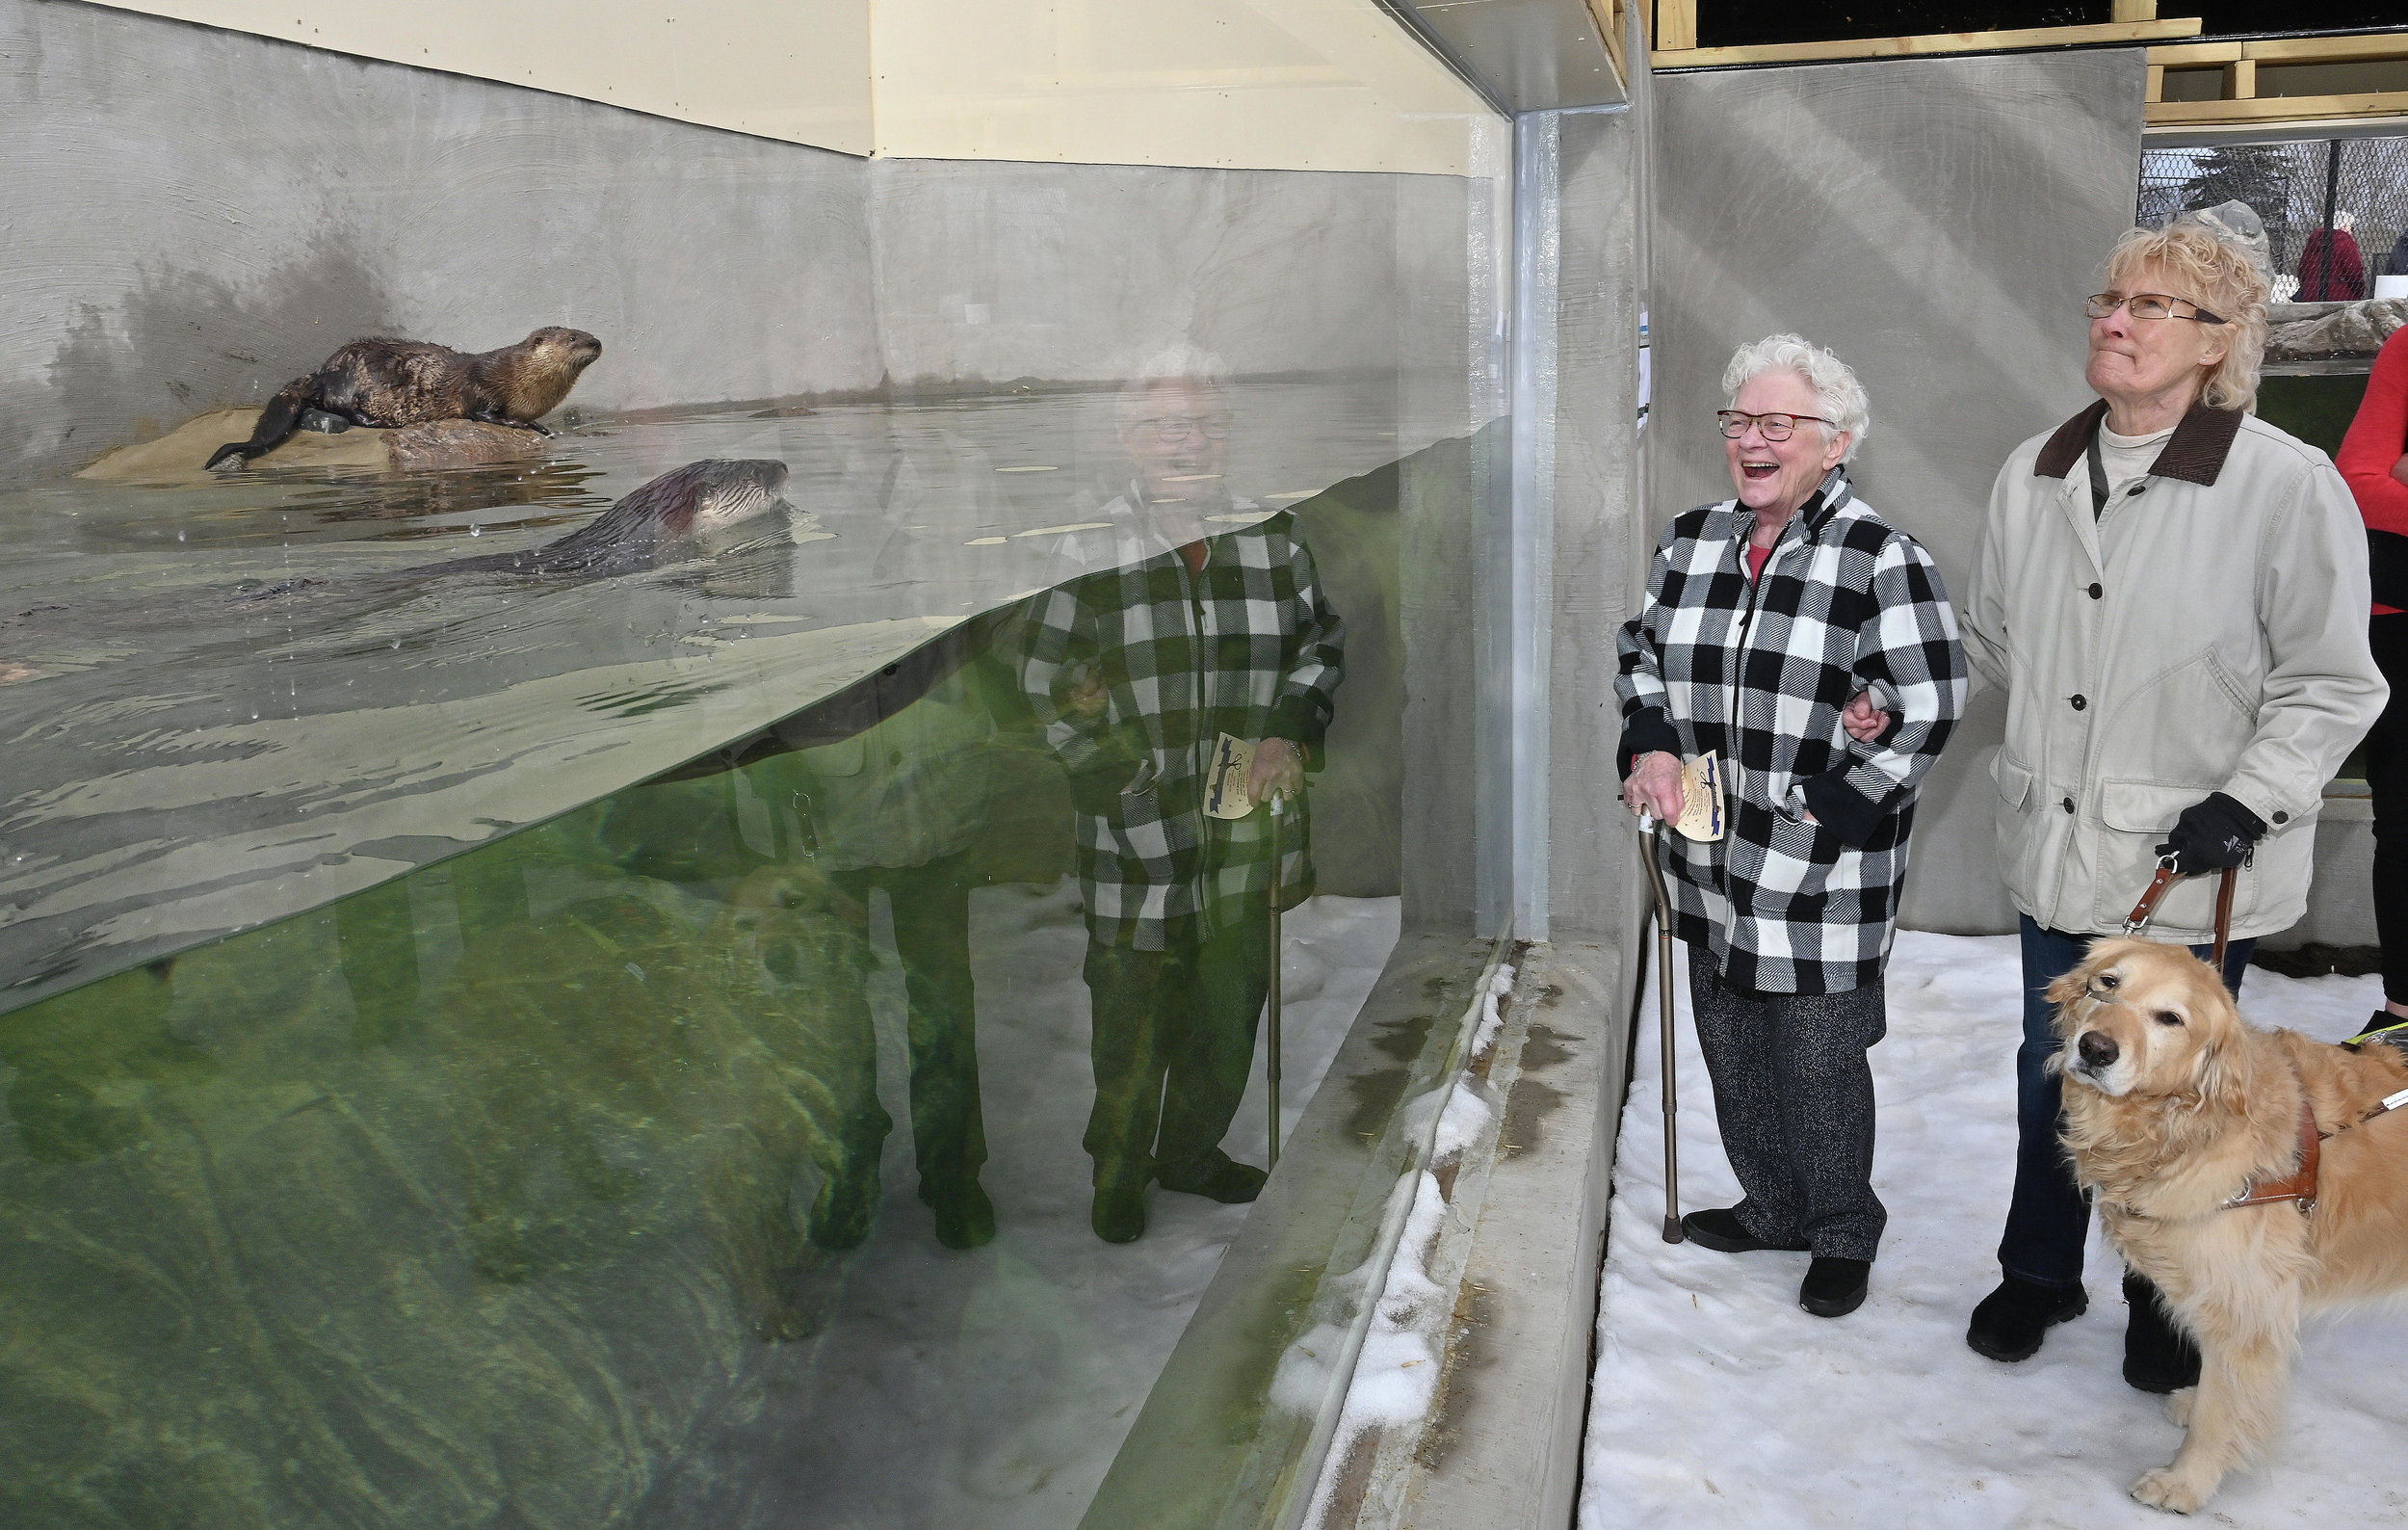 Mary Schneider (left) and Bunny Tabott with her dog Dixie watch North American river otters Ted and Dave swim Monday, April 15, in the new Pine Grove Zoo exhibit in Little Falls. The new aquarium, which opened Monday for the season, features an acrylic tank and tunnel where the otters can be viewed safely. Steve Kohls / Brainerd Dispatch Video